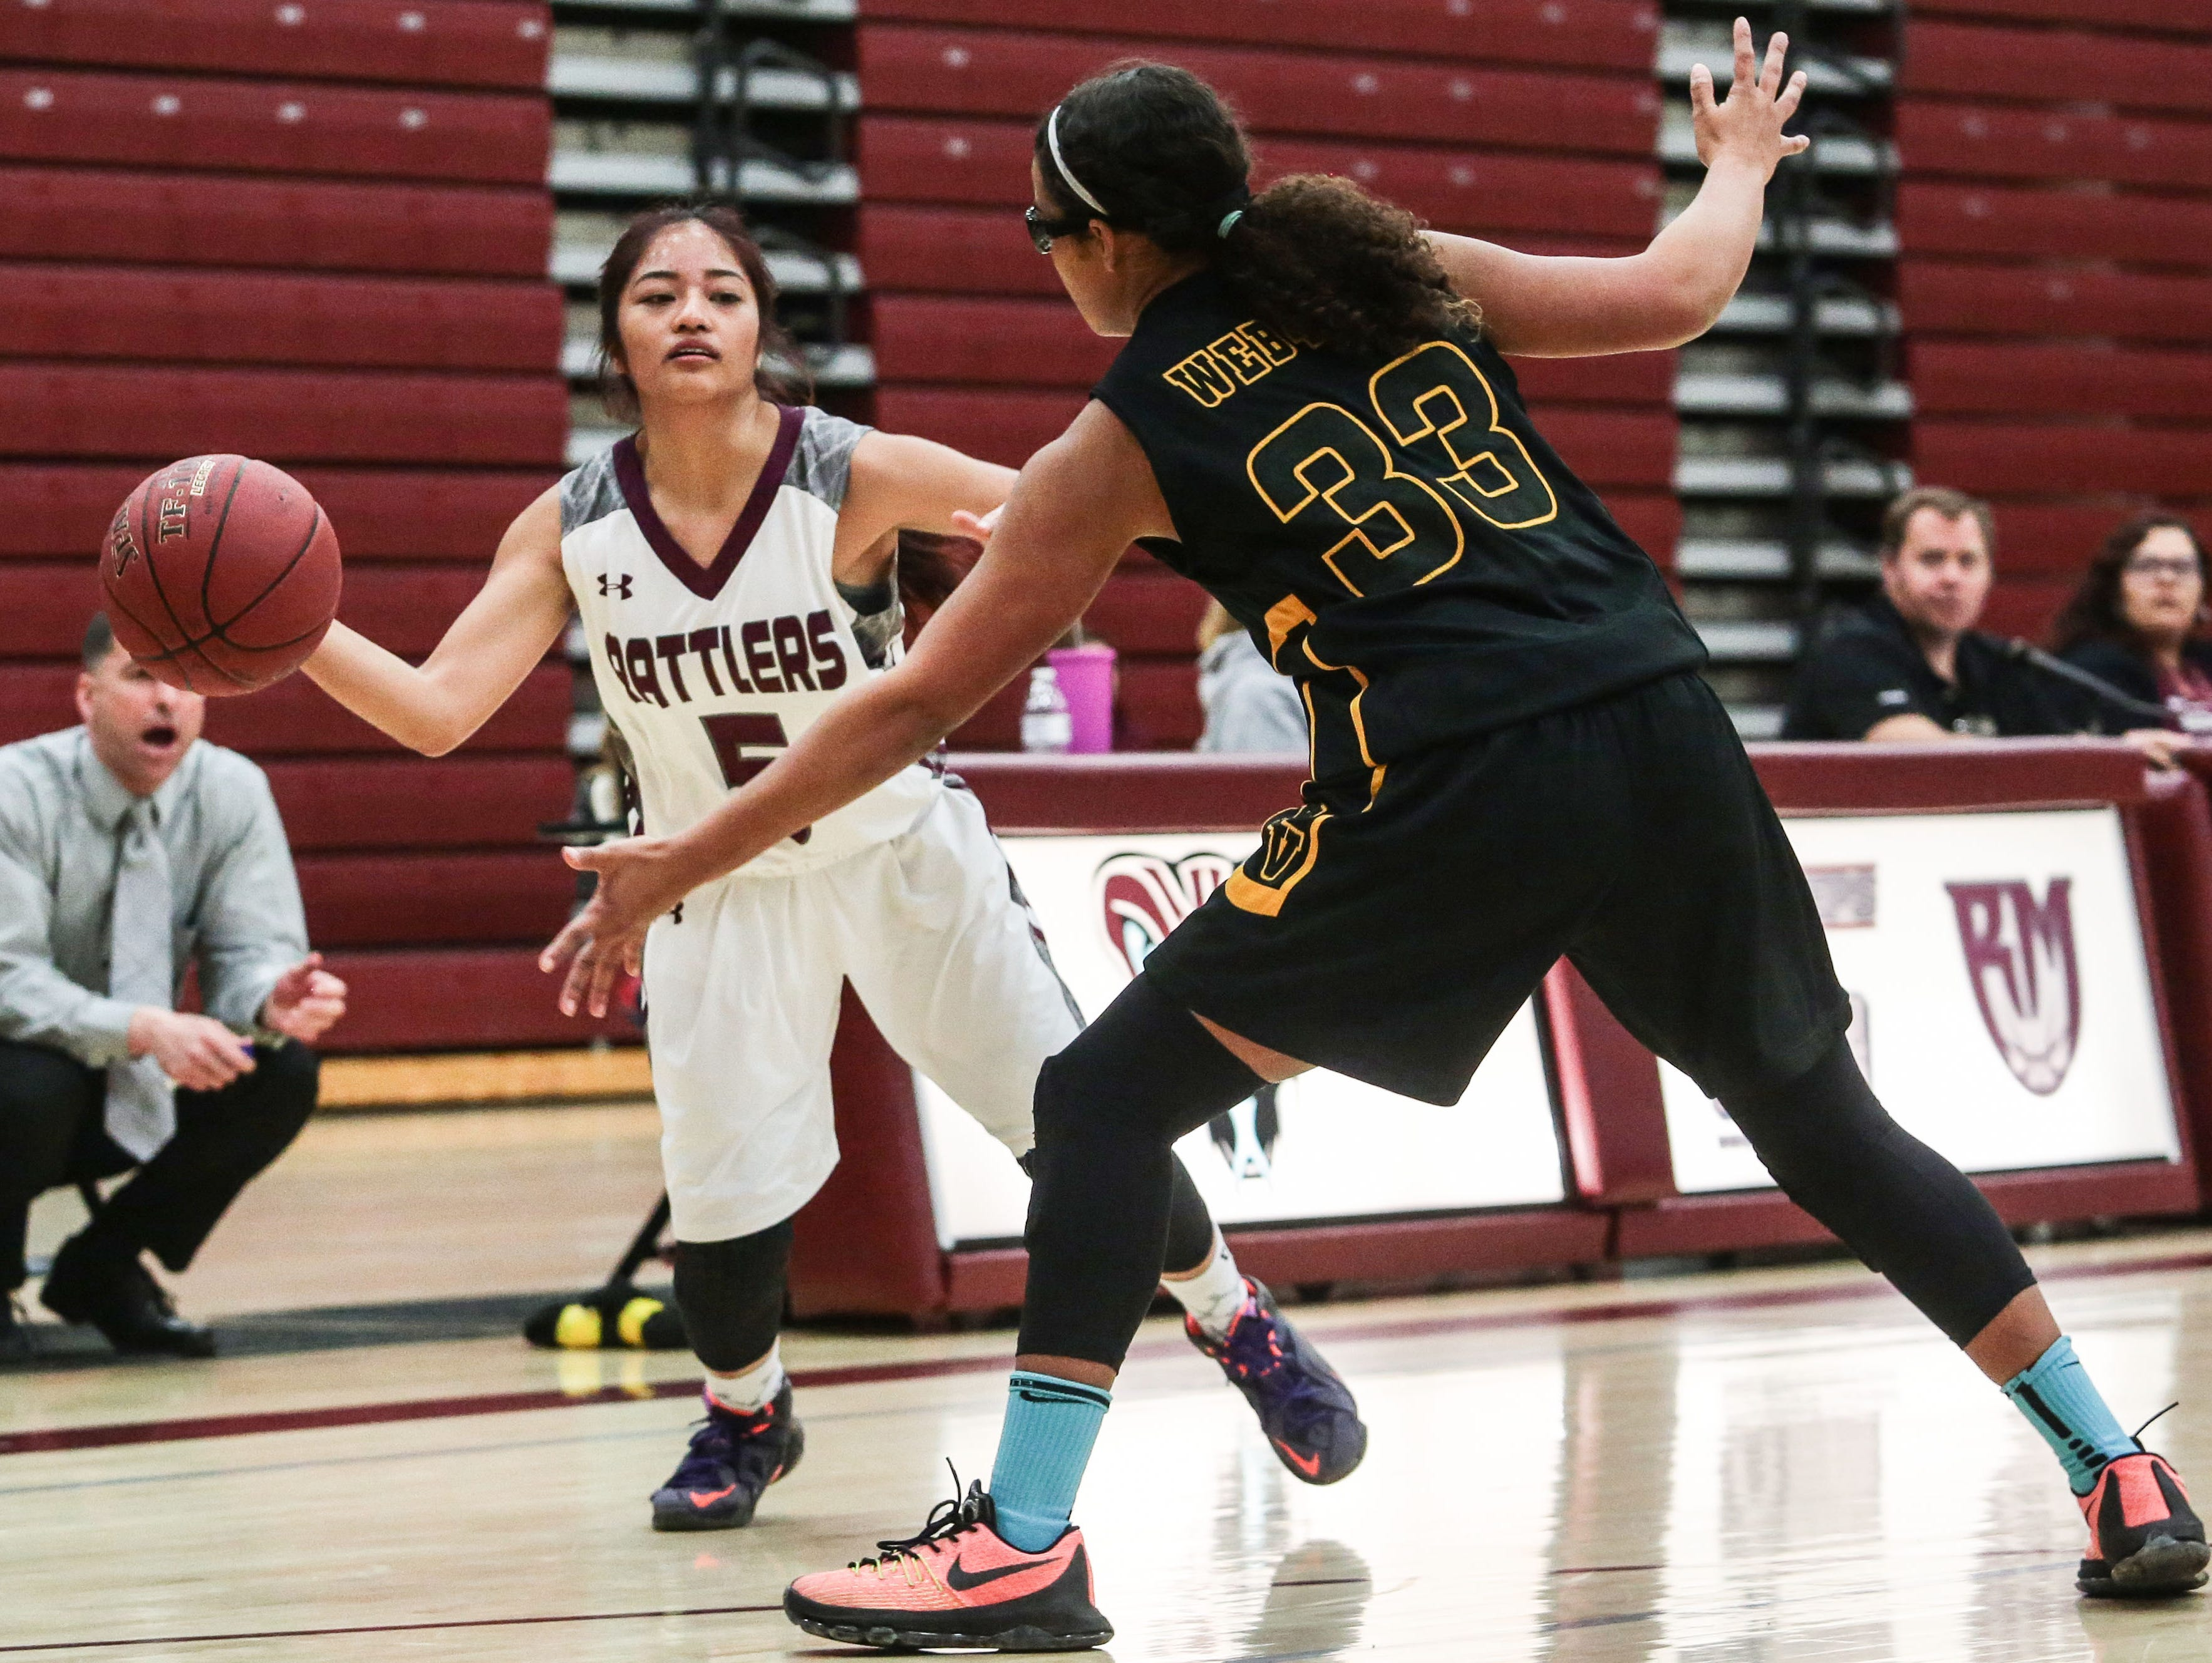 Rancho Mirage's Jodi-anne Ingal passes the ball against Yucca Valley on Thursday, February 2, 2017 in Rancho Mirage.